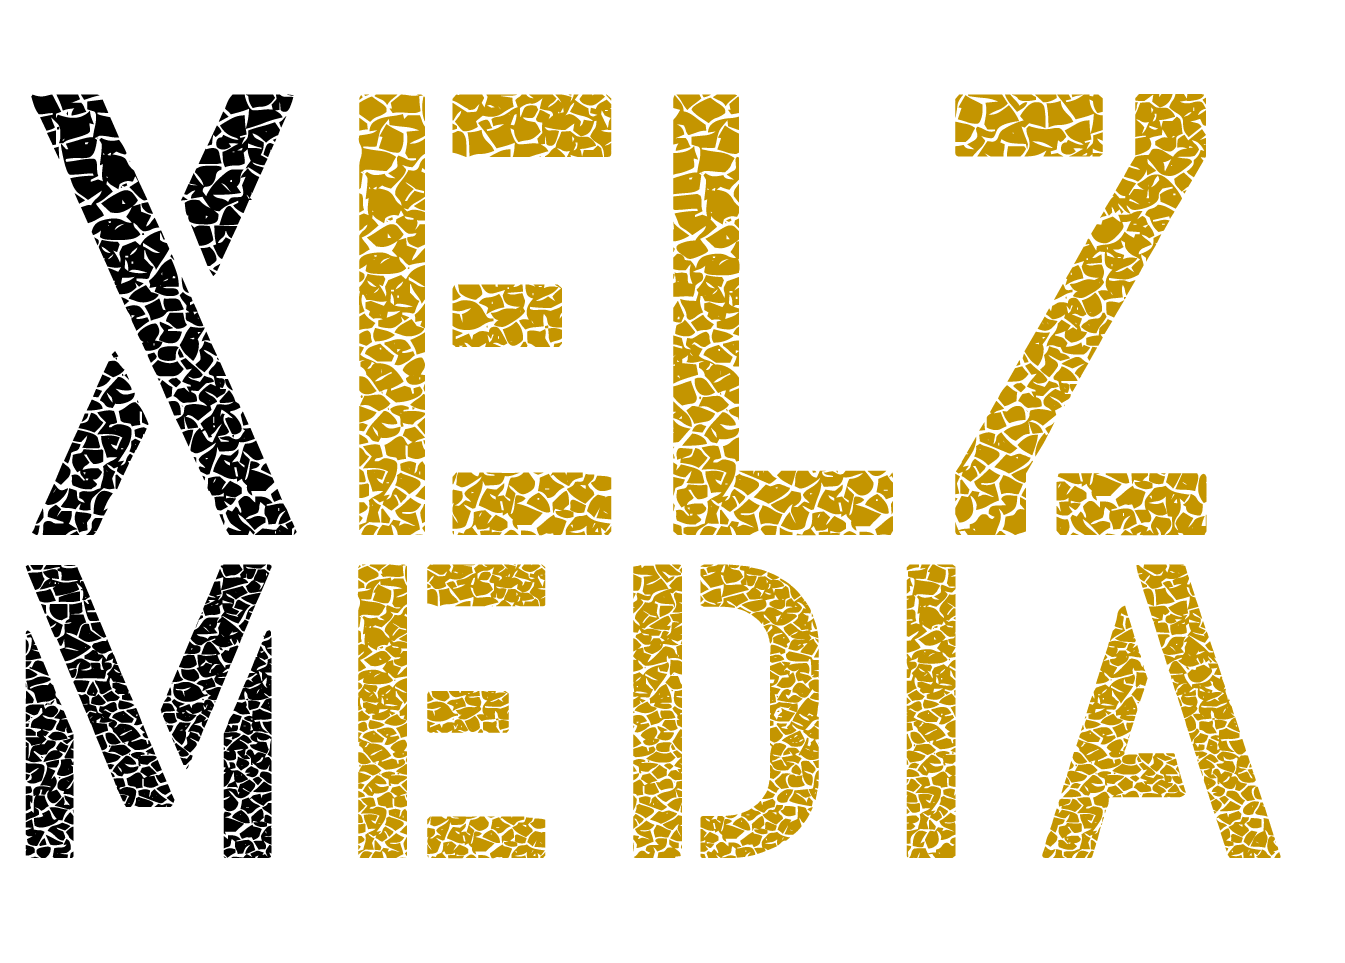 Xelzmedia - Youtube Media Channel Content Creator